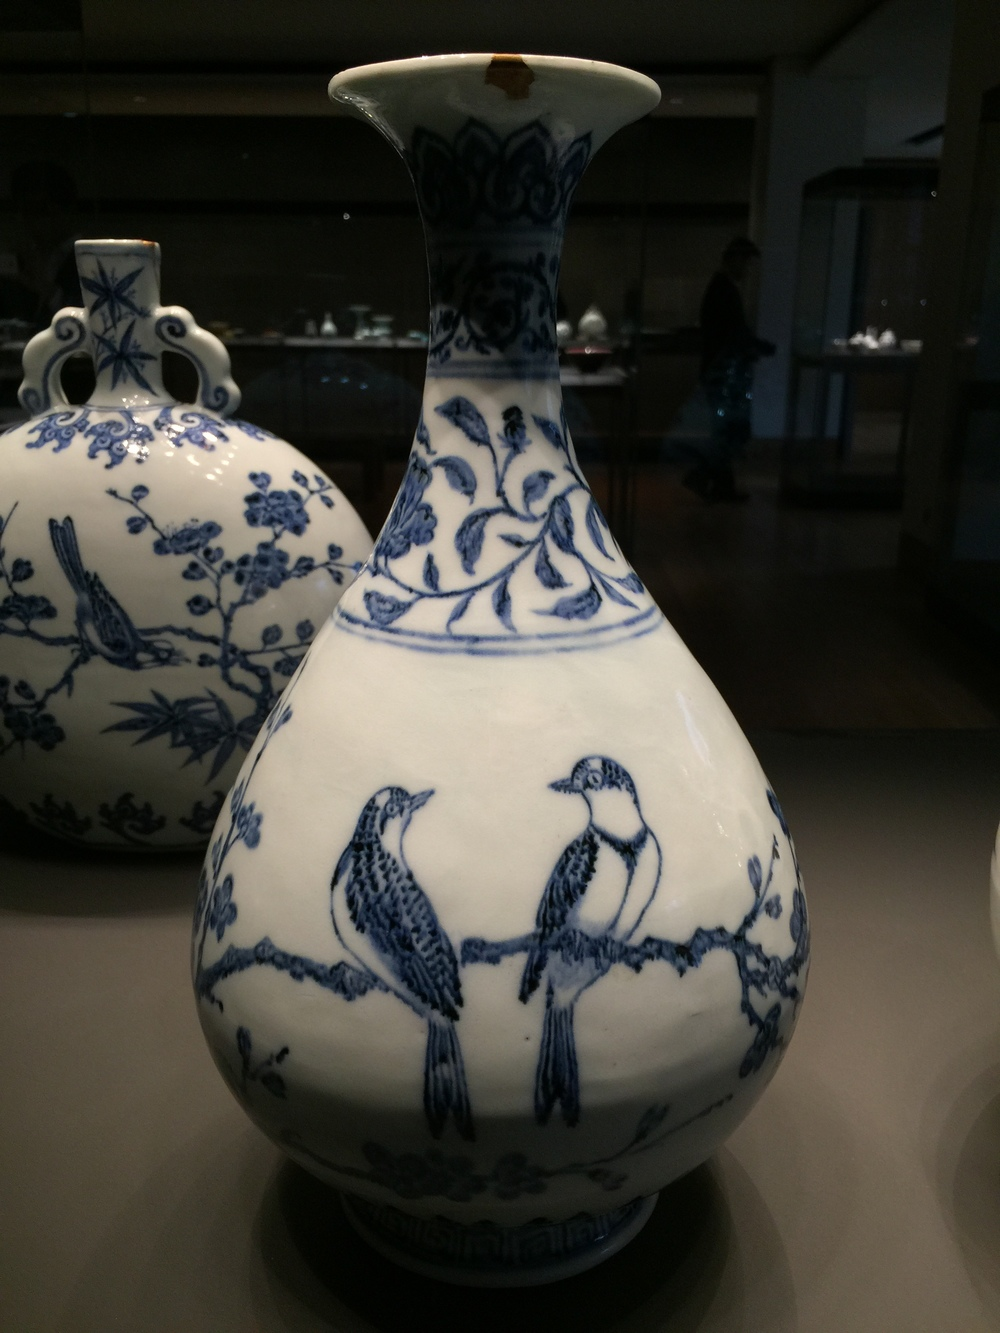 Chinese-Porcelain-British-Museum-Percival-David-jessewaugh.com-41.jpg